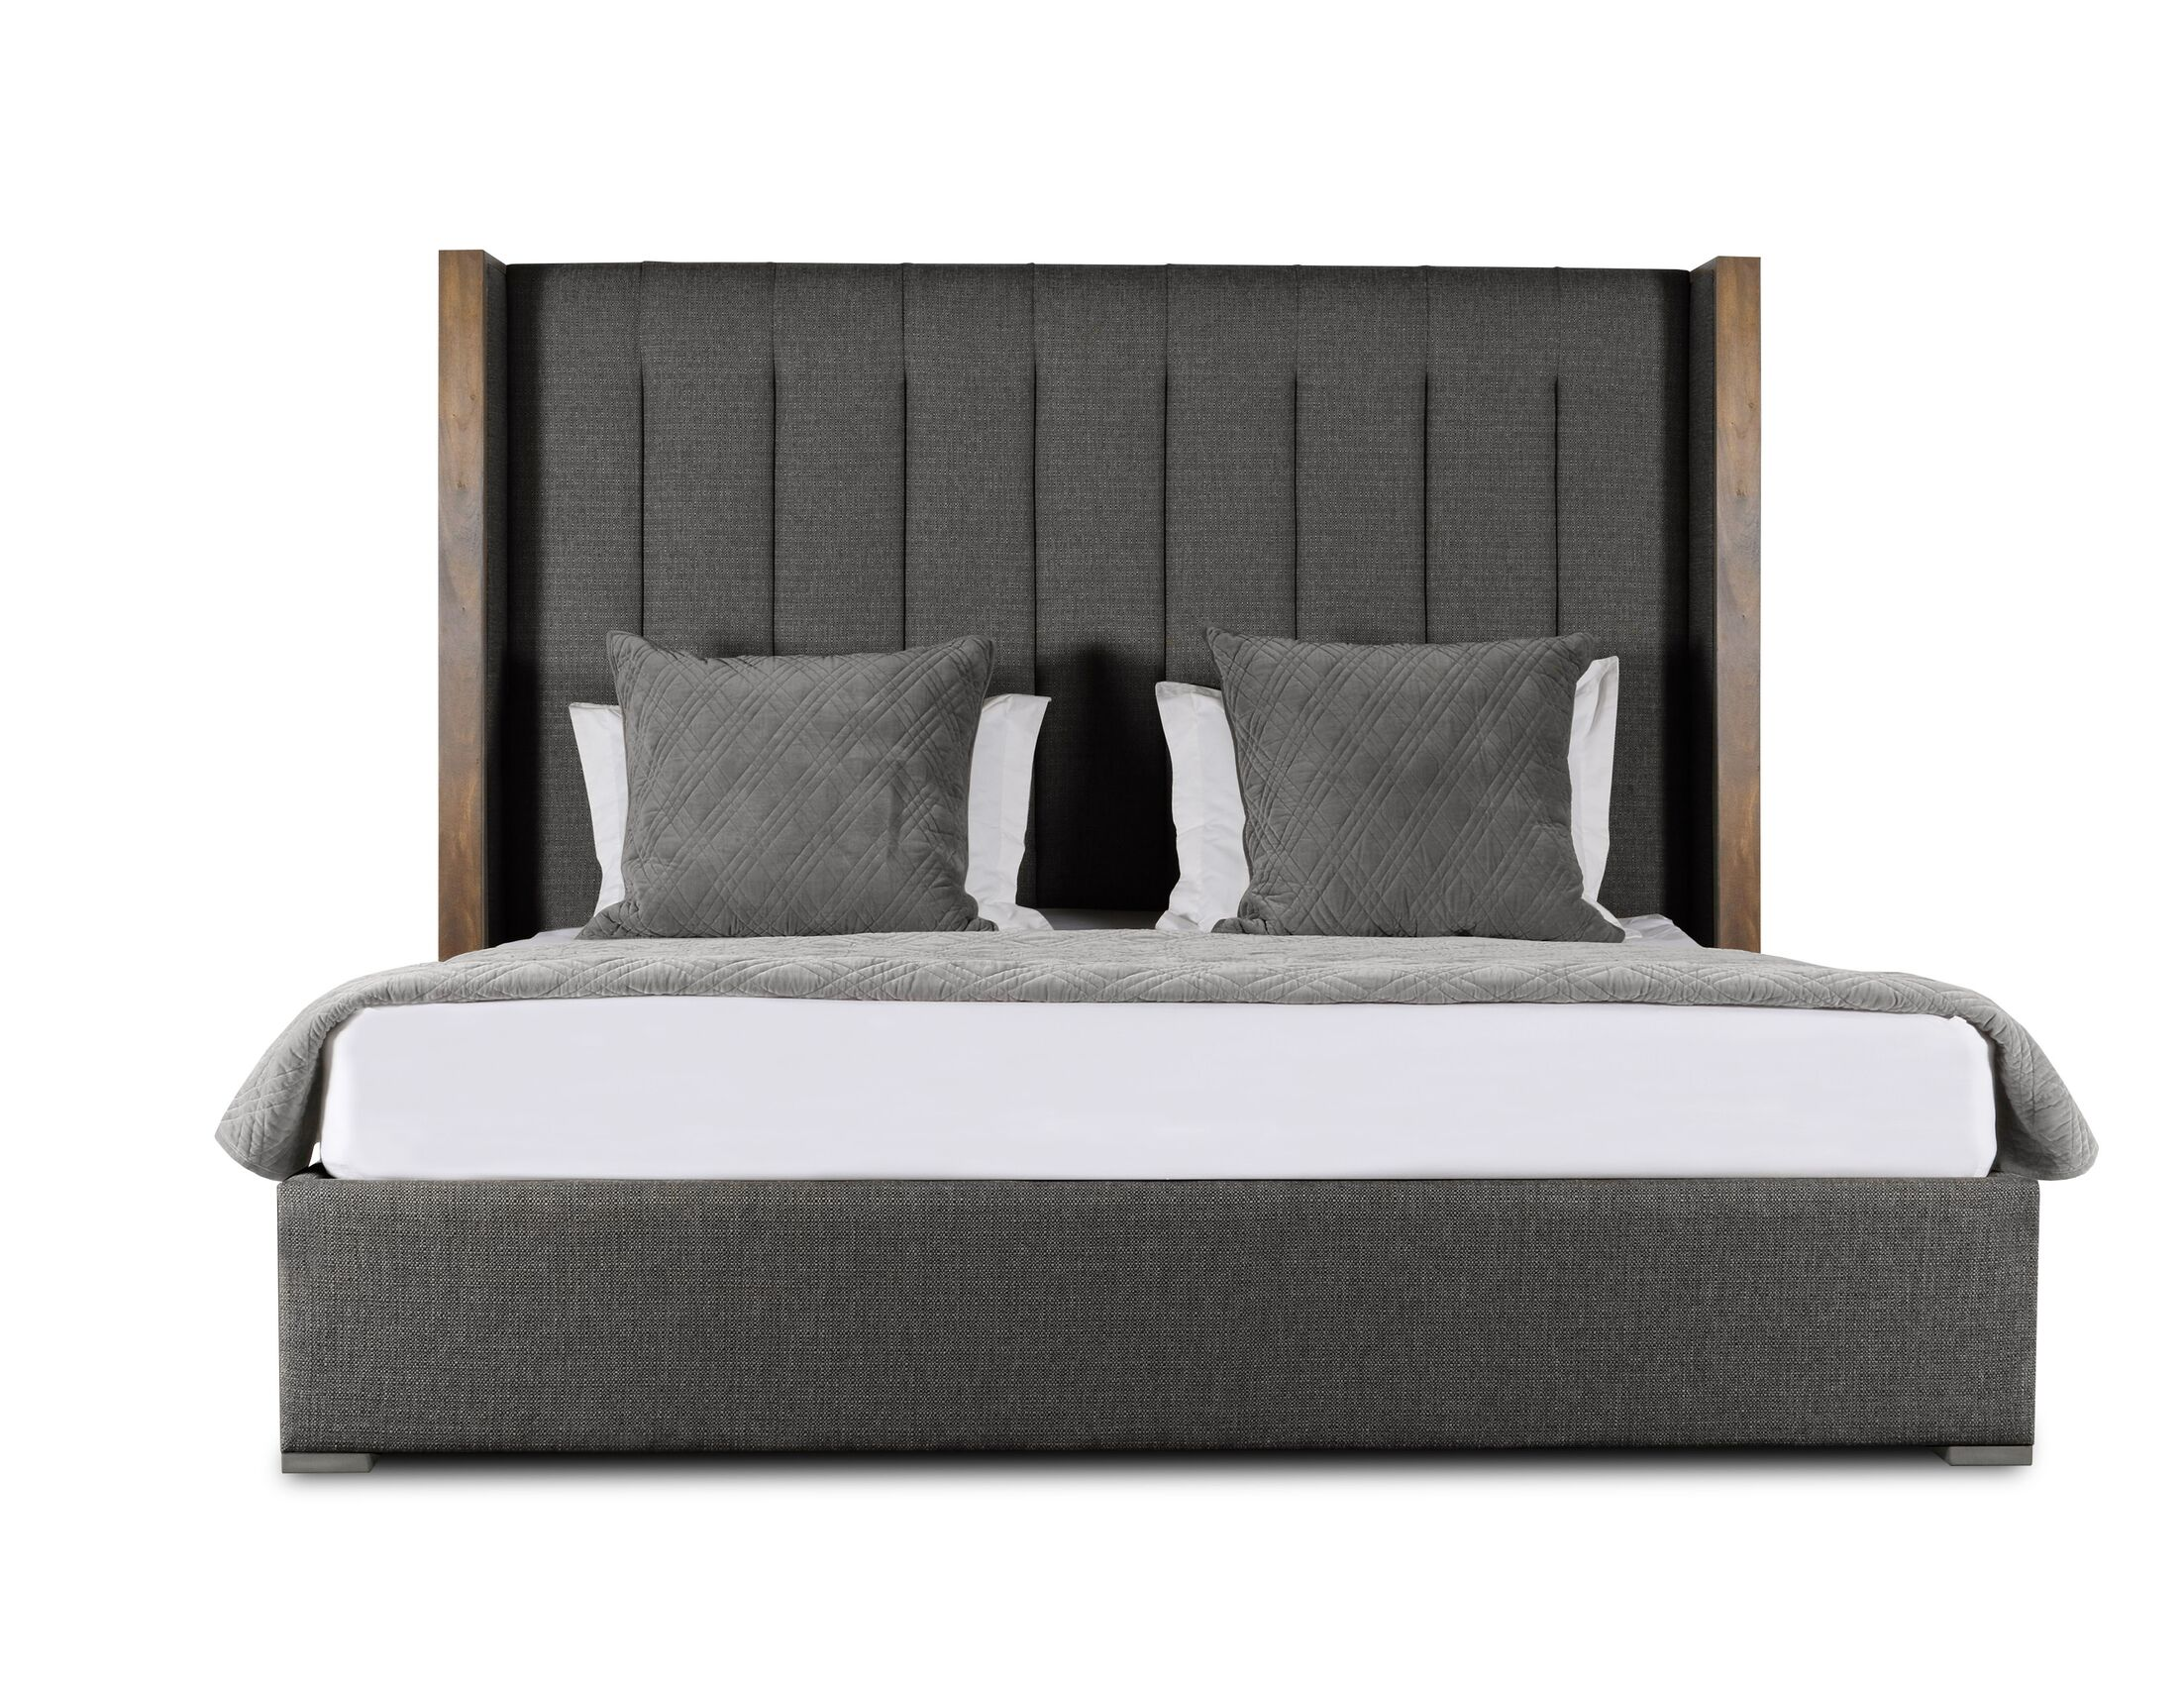 Hank Vertical Channel Tufting Upholstered Platform Bed Color: Charcoal, Size: High Height Queen